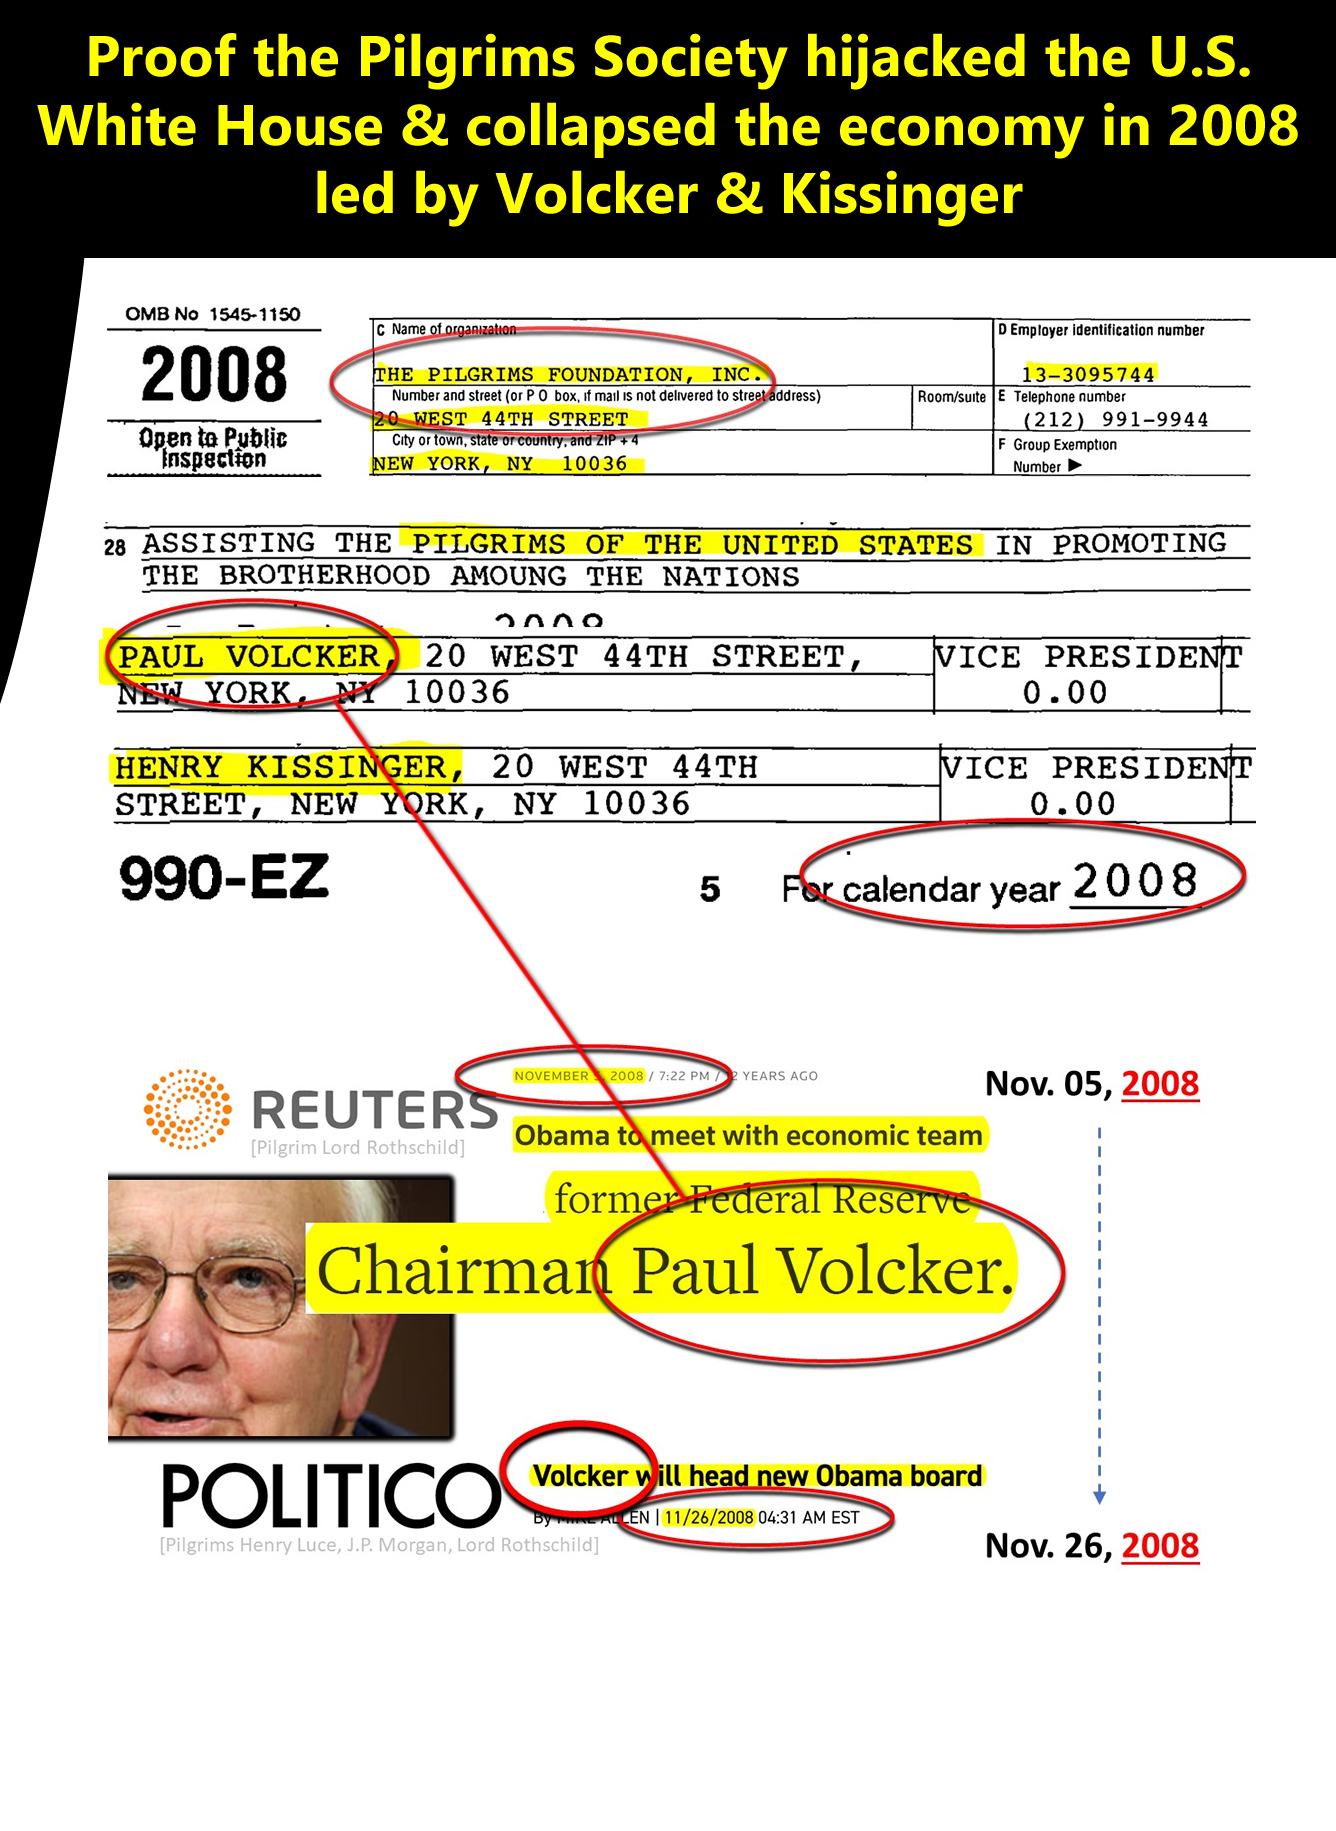 Proof Paul A. Volcker worked seditiously for the Pilgrims Society while advising the Presidency on economic policy.